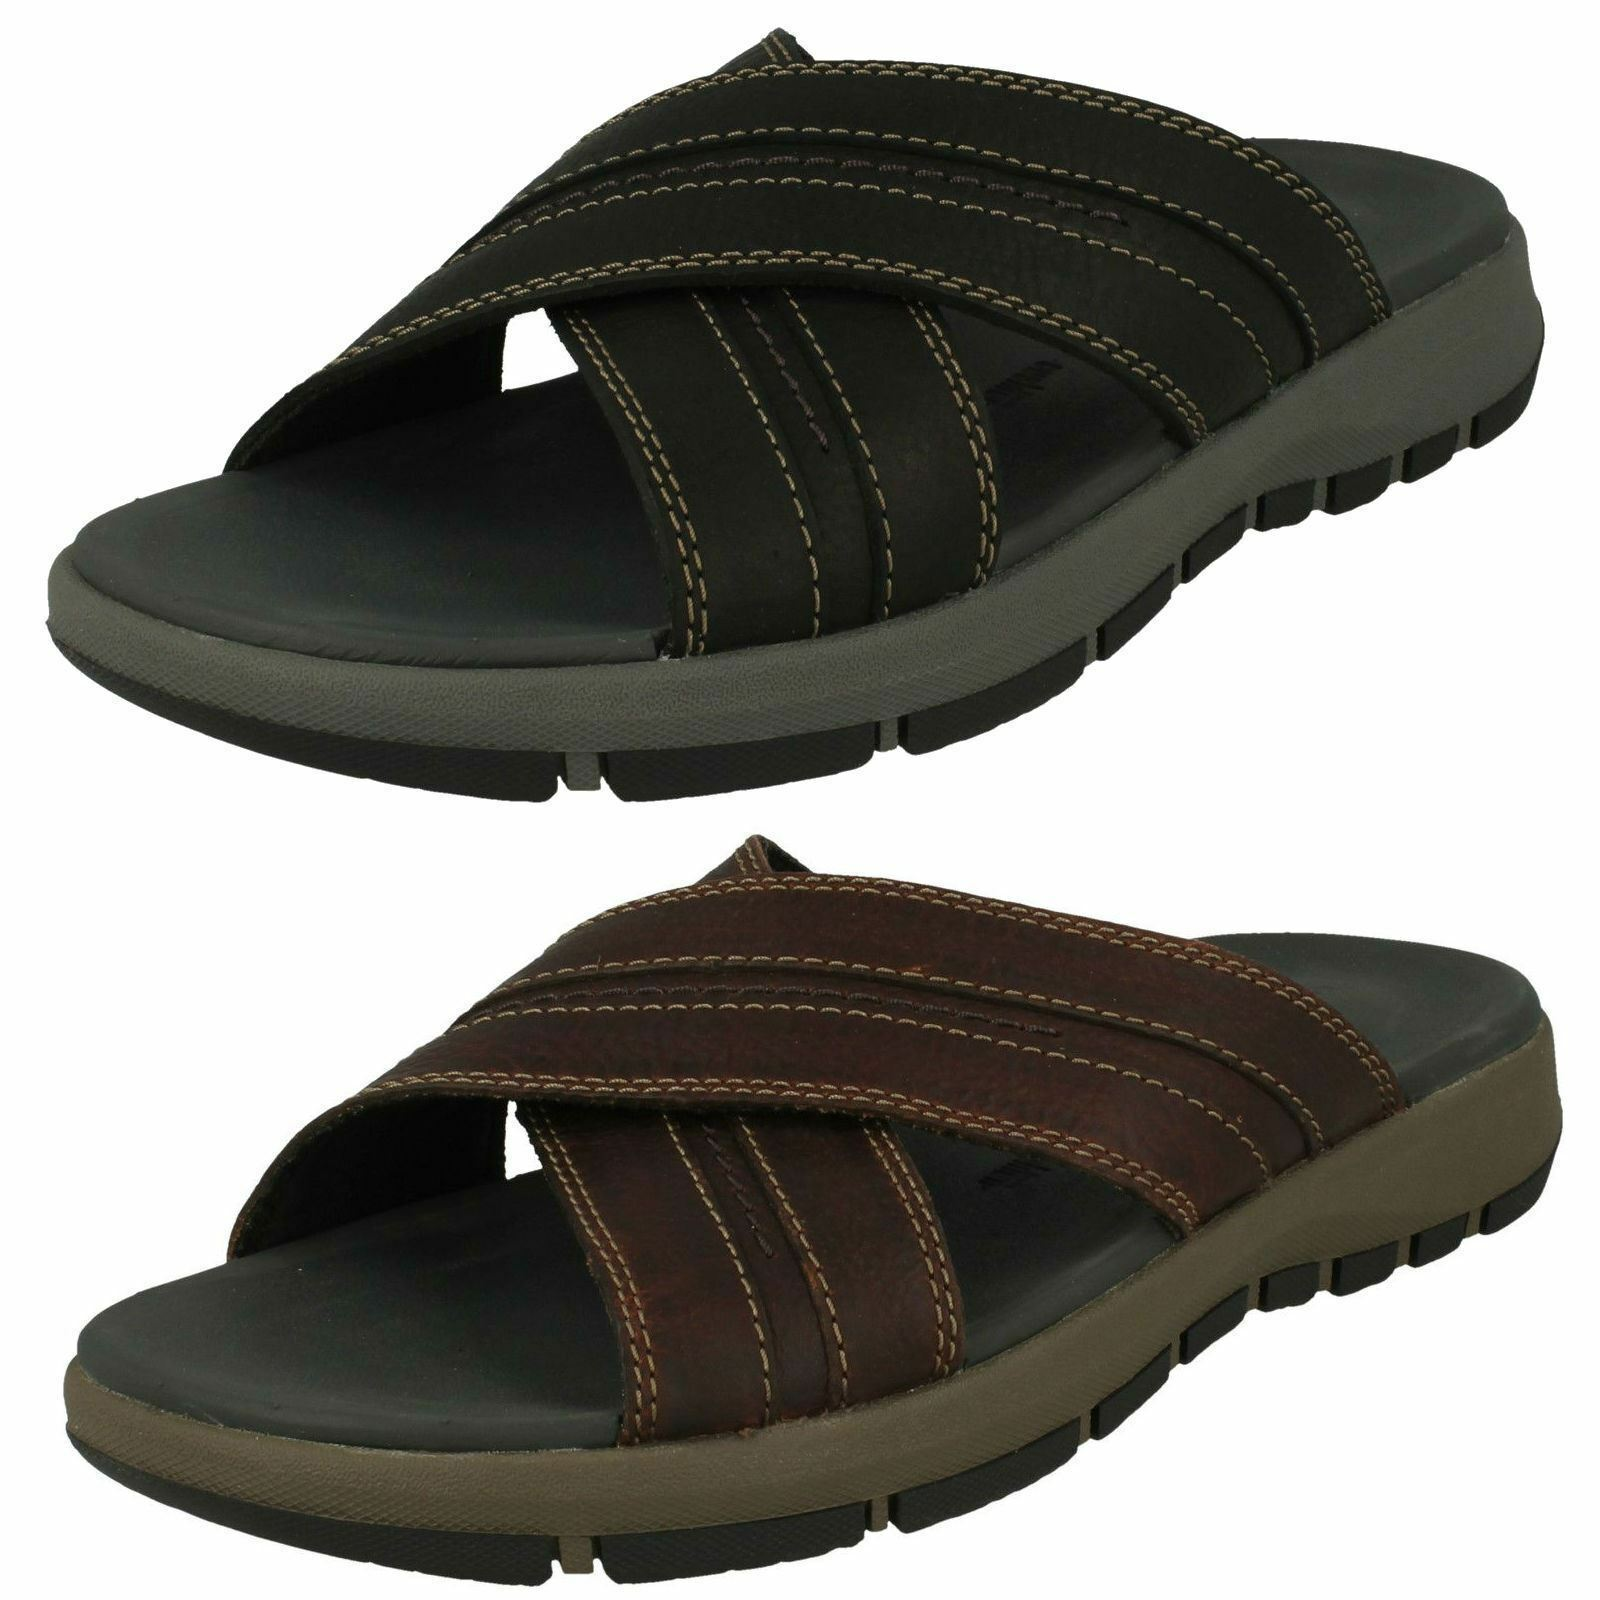 MENS CLARKS LEATHER SLIP ON CROSS OVER SUMMER MULE SANDALS SHOES BRIXBY CROSS